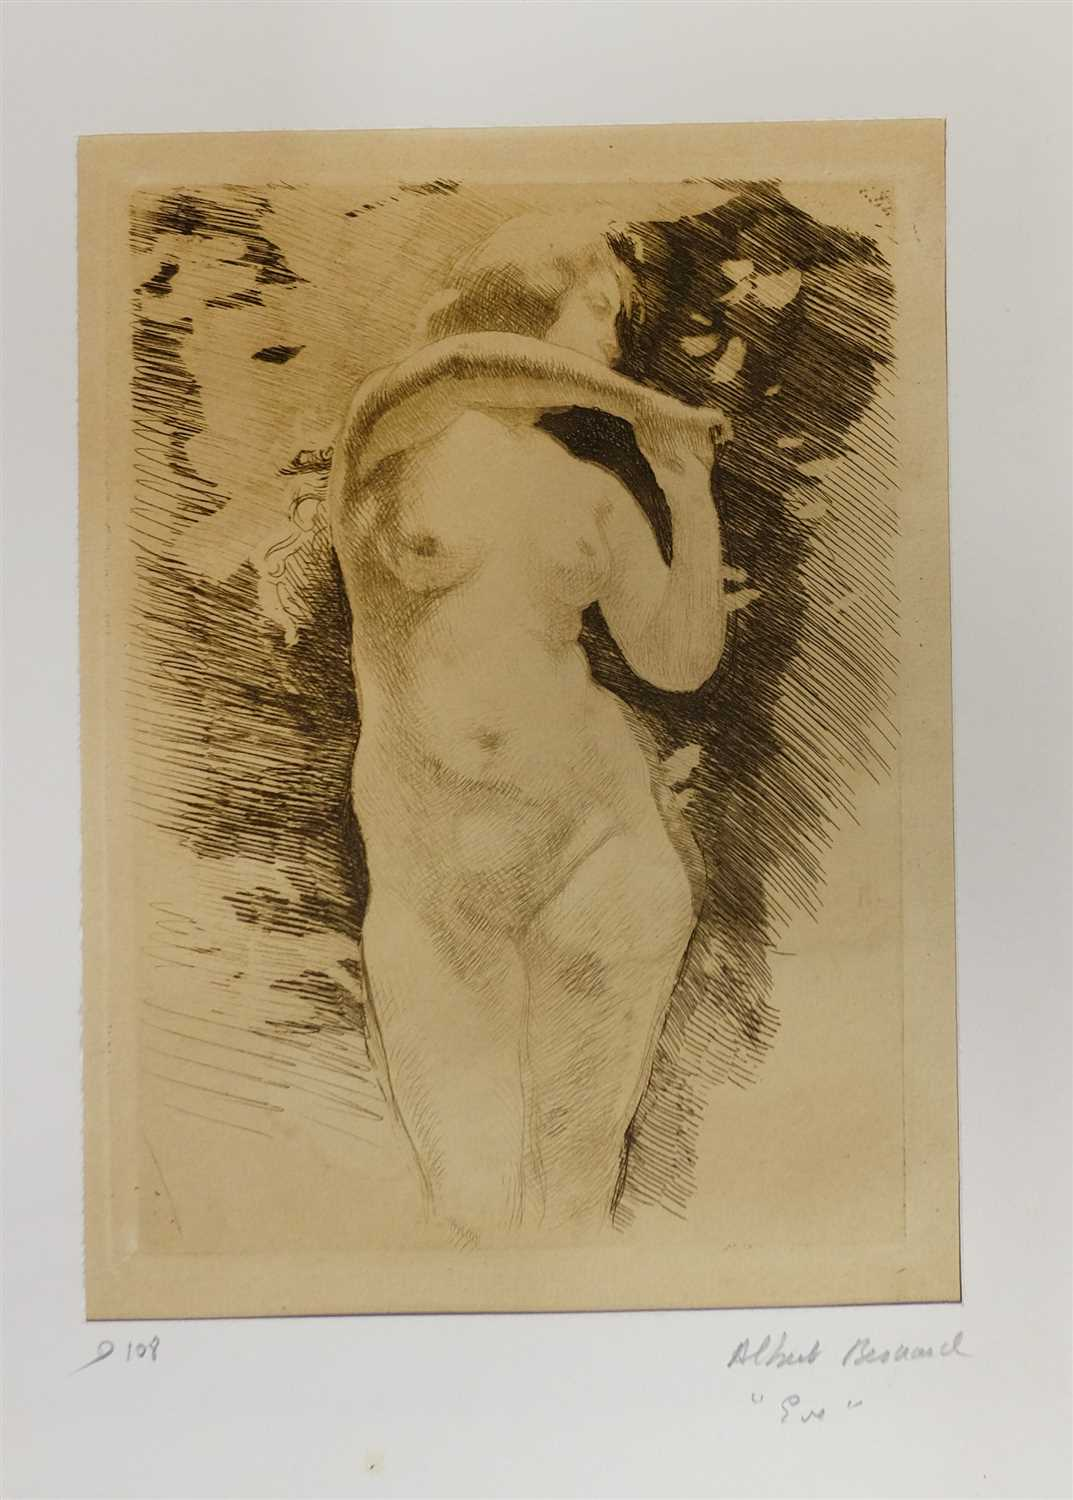 Lot 20-Etchings. A mixed collection of approximately sixty-five etchings, mostly early 20th century